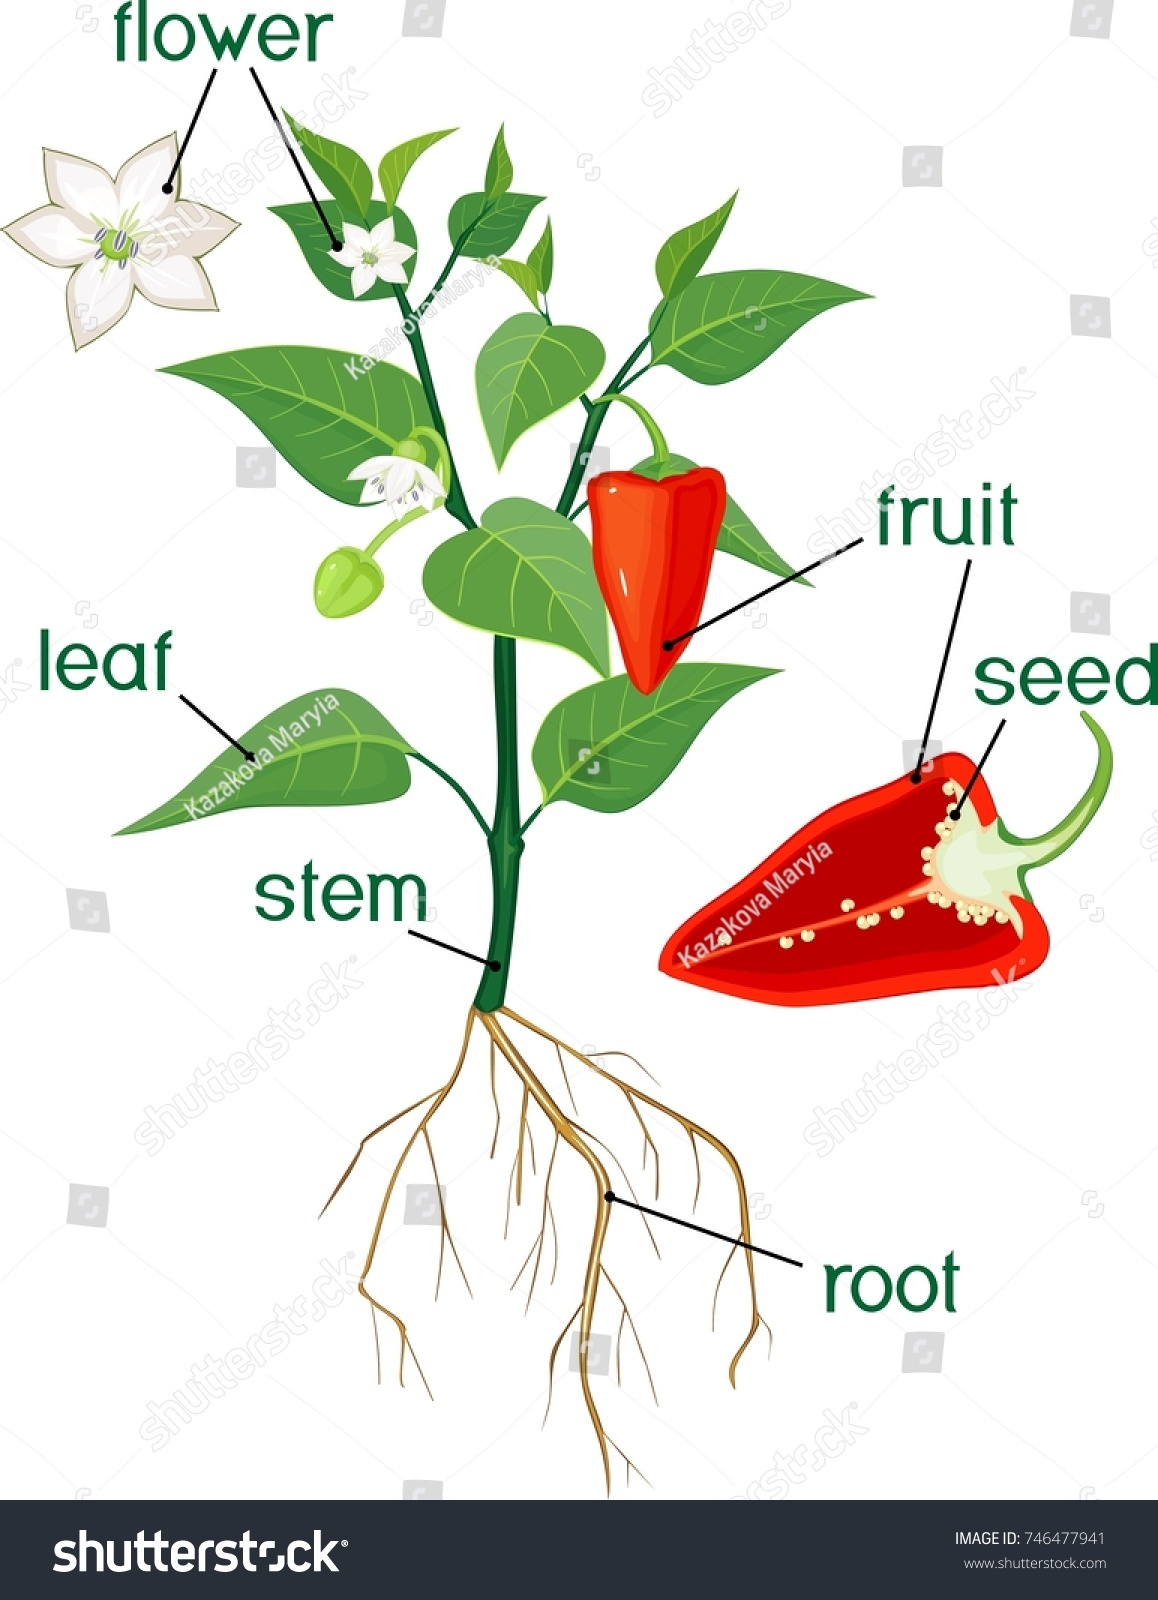 morphology tree diagram human arterial and venous system parts plant flowering bell pepper stock vector